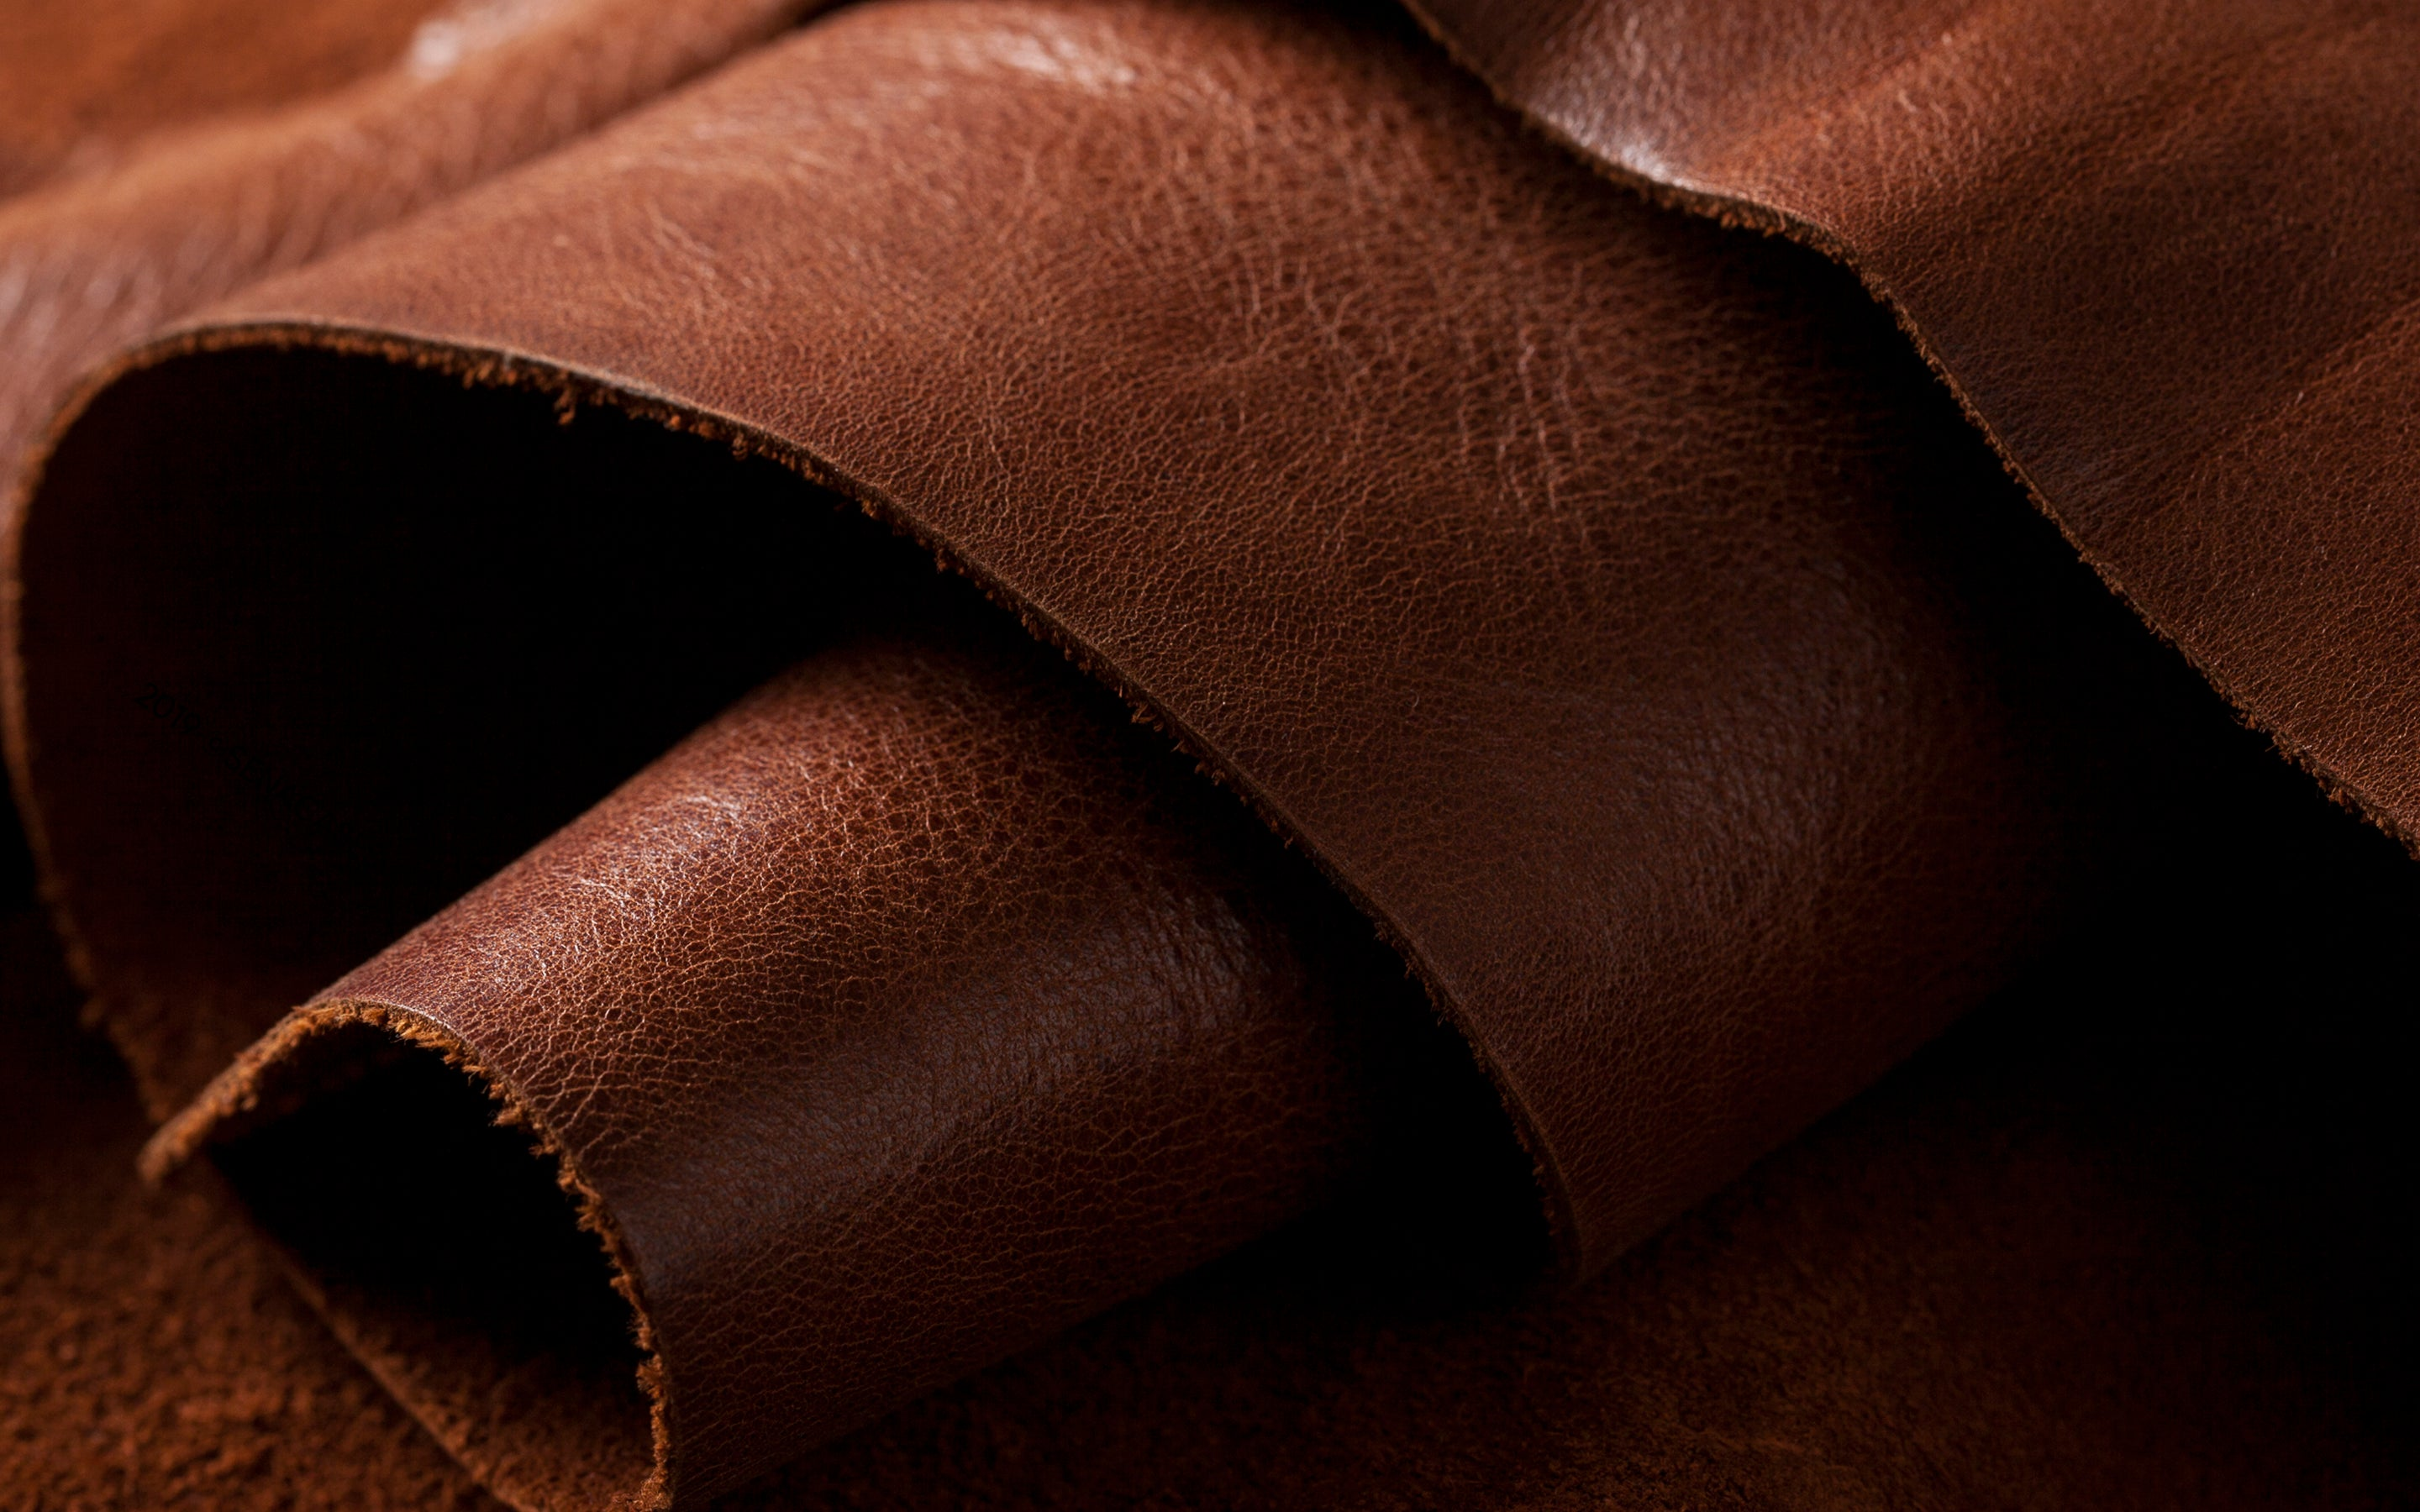 Brown Leather Roll Wallpaper for Desktop